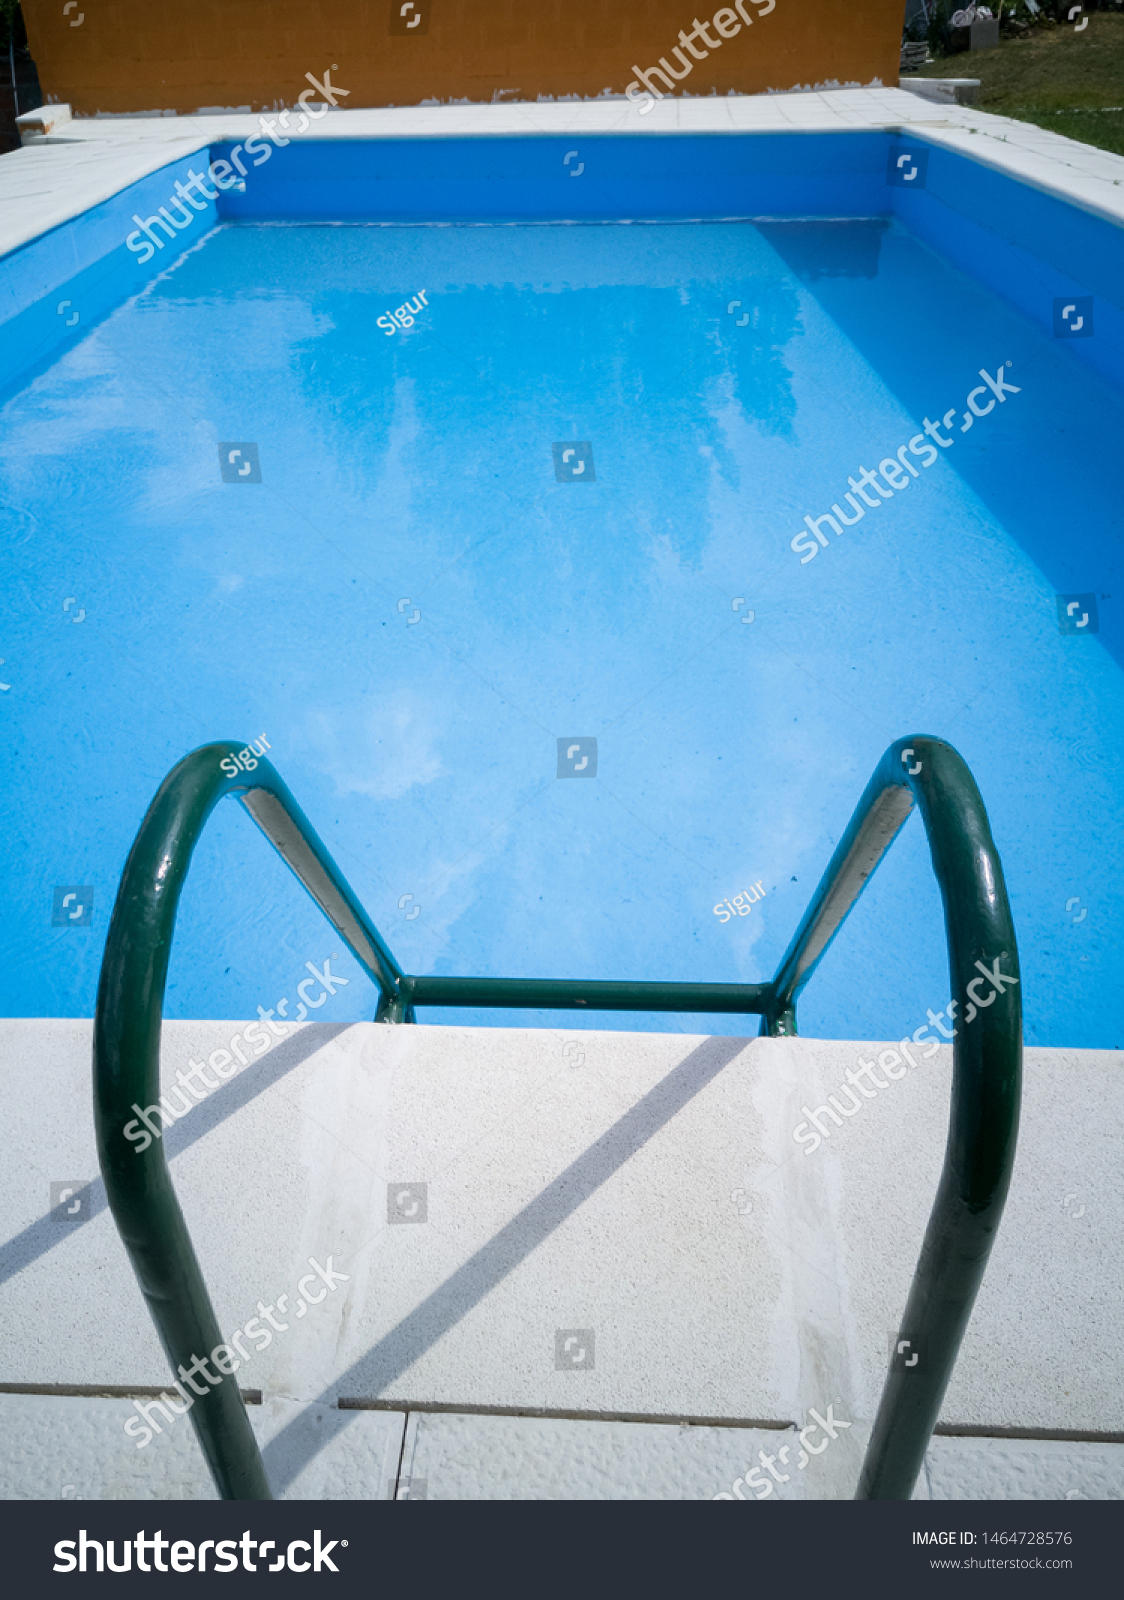 Small Outdoor Pool No People Seen Stock Photo Edit Now 1464728576